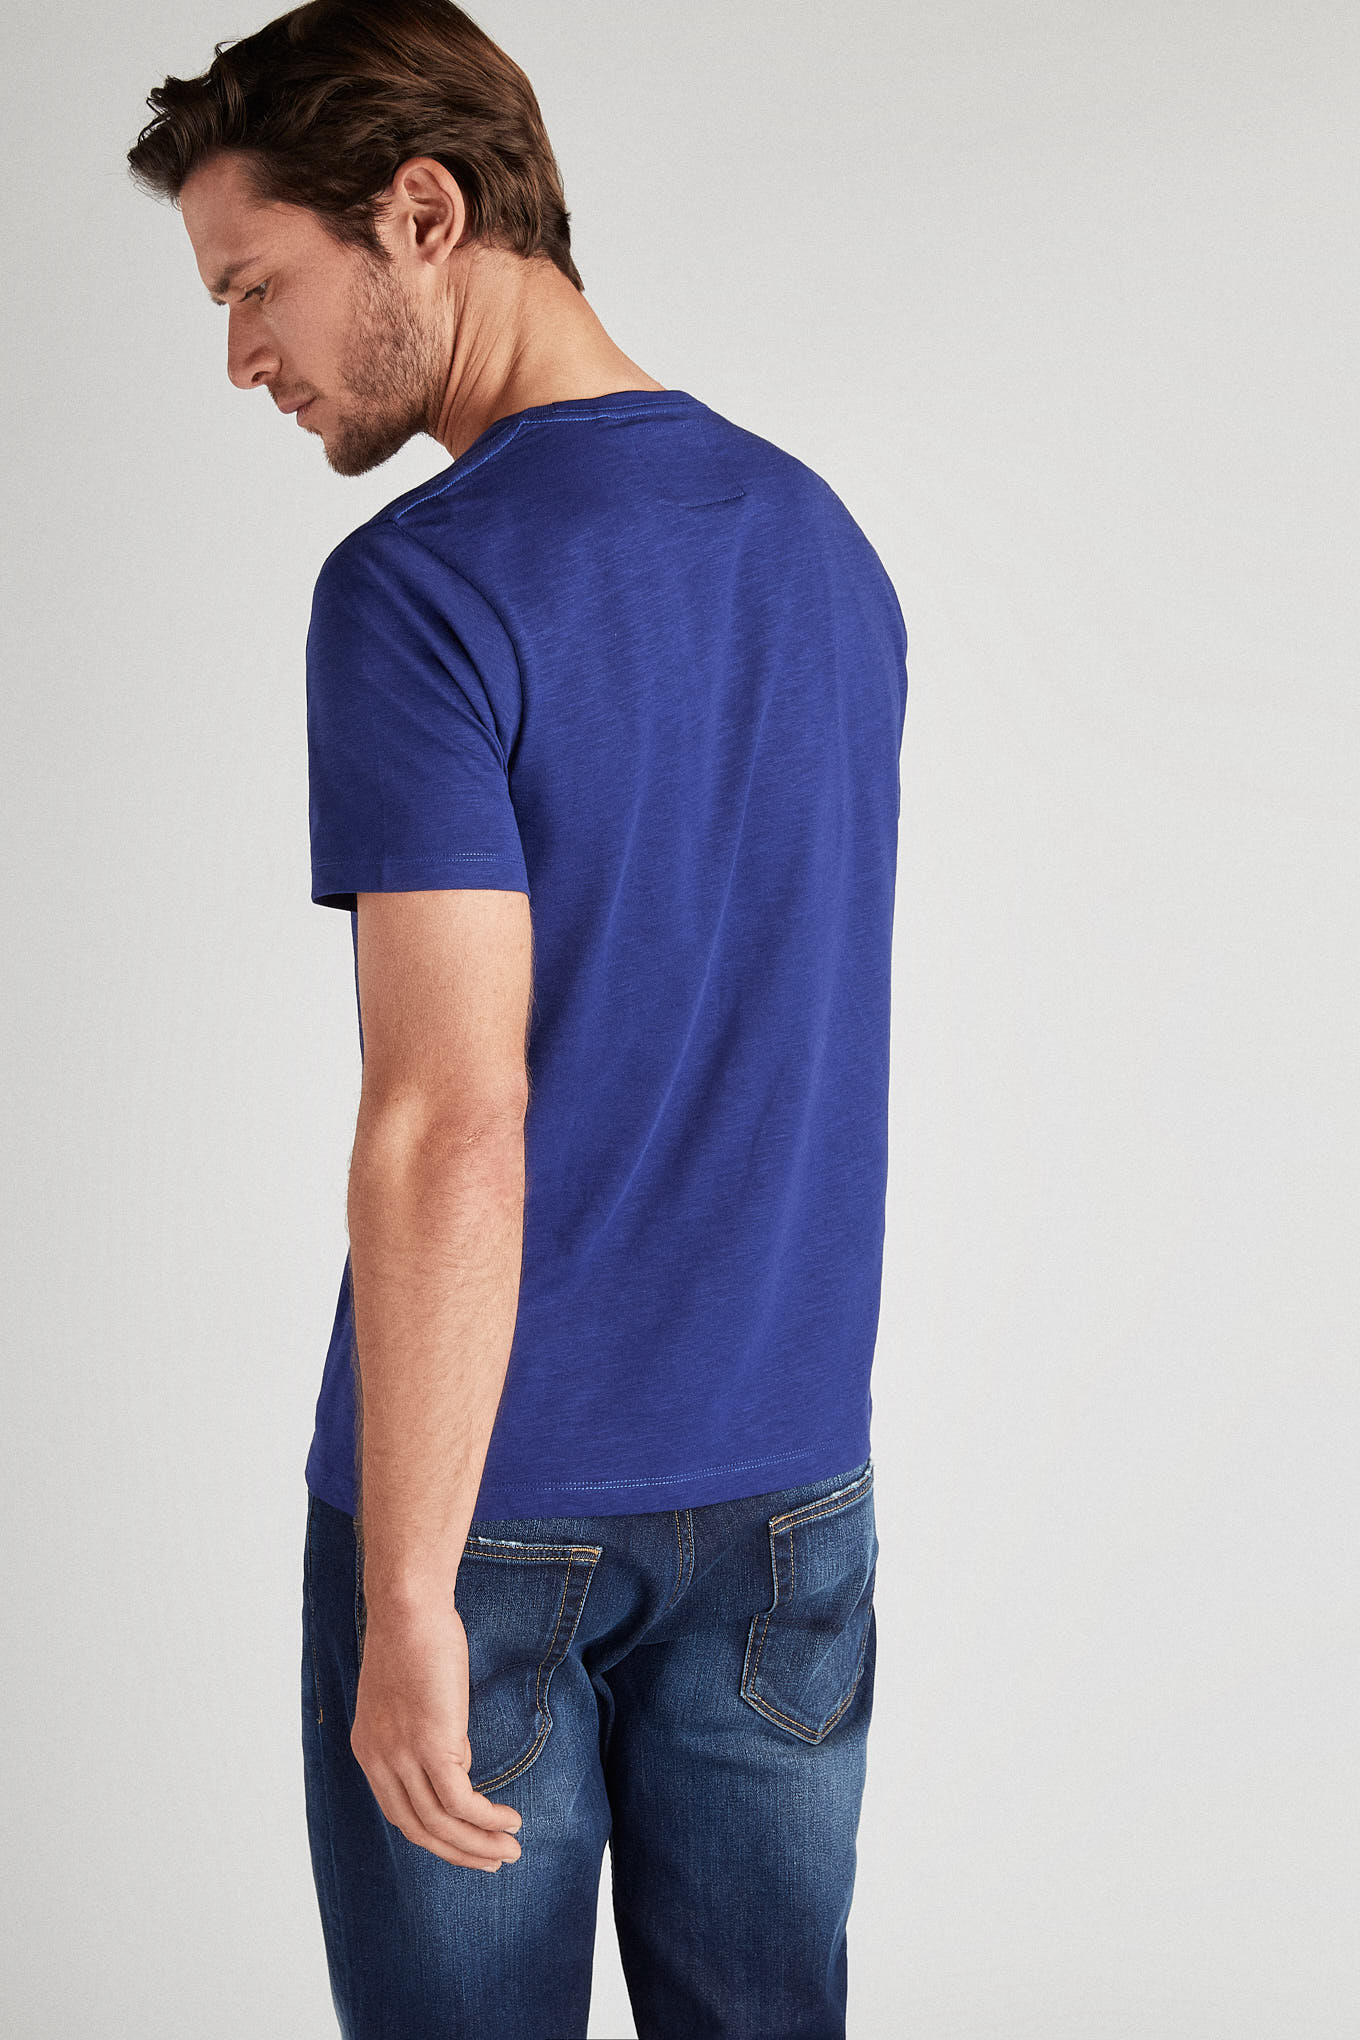 T-Shirt Royal Blue Sport Man